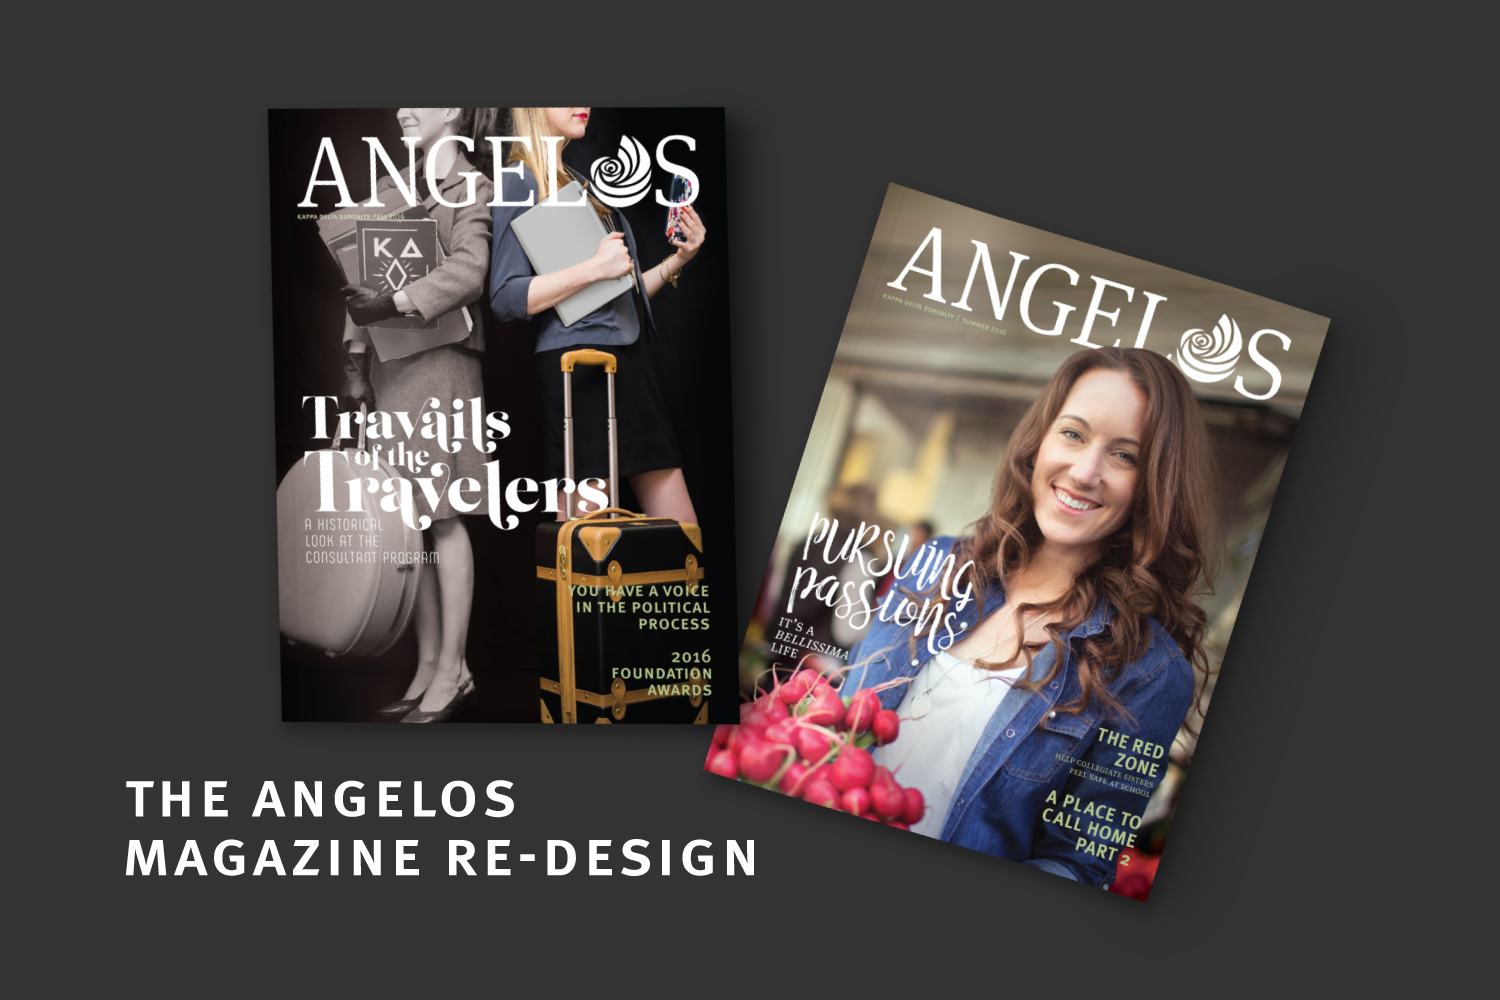 kappa-delta-sorority-top-16-moments-in-2016-angelos-magazine-re-brand-updated-editorial-design